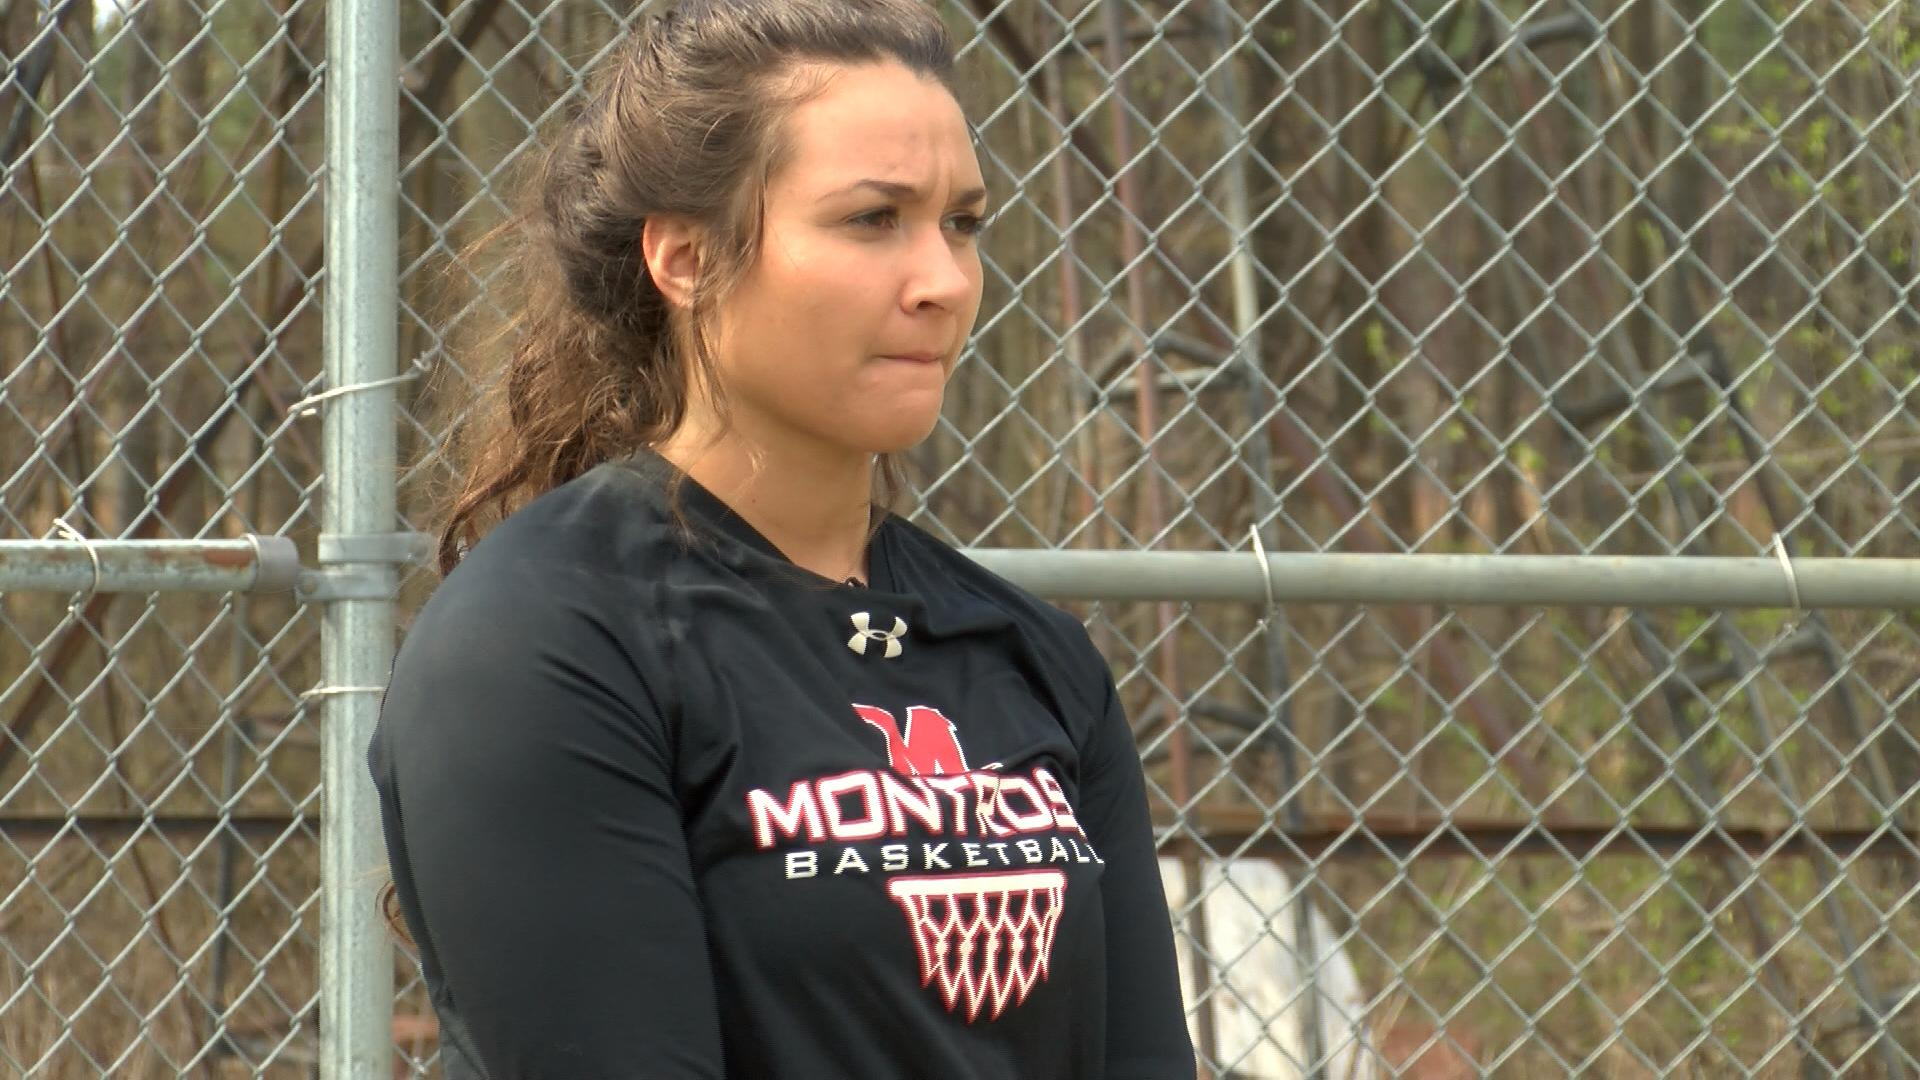 Montrose Track and Field star Brooklin Klopf is eyeing her second straight state title in the shot put.